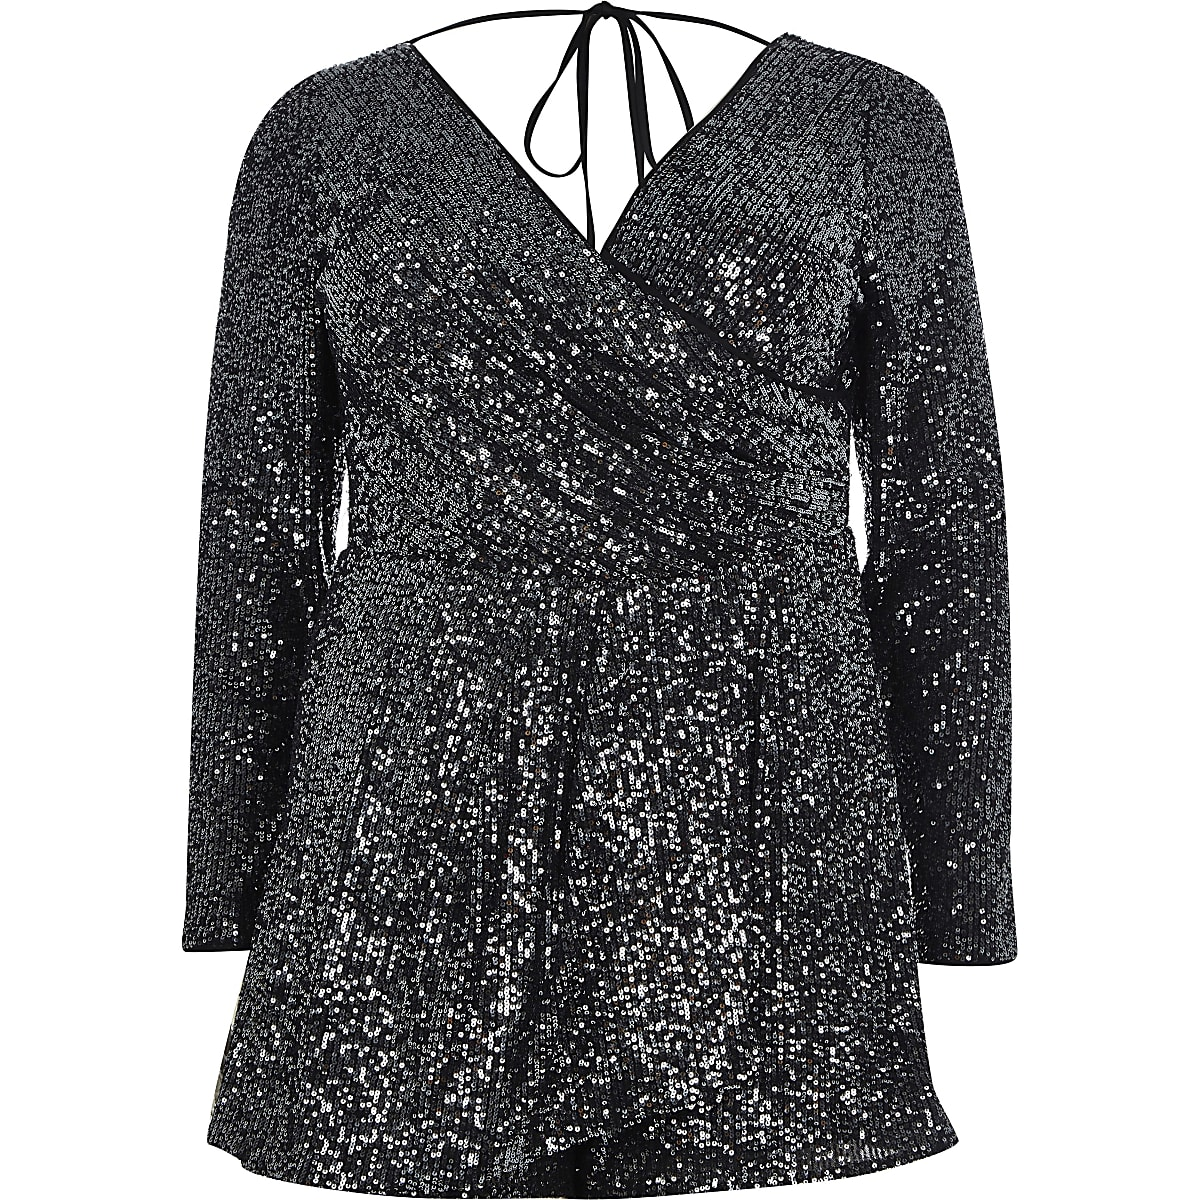 8d66be65ad Plus dark grey sequin wrap front playsuit - Playsuits - Playsuits ...